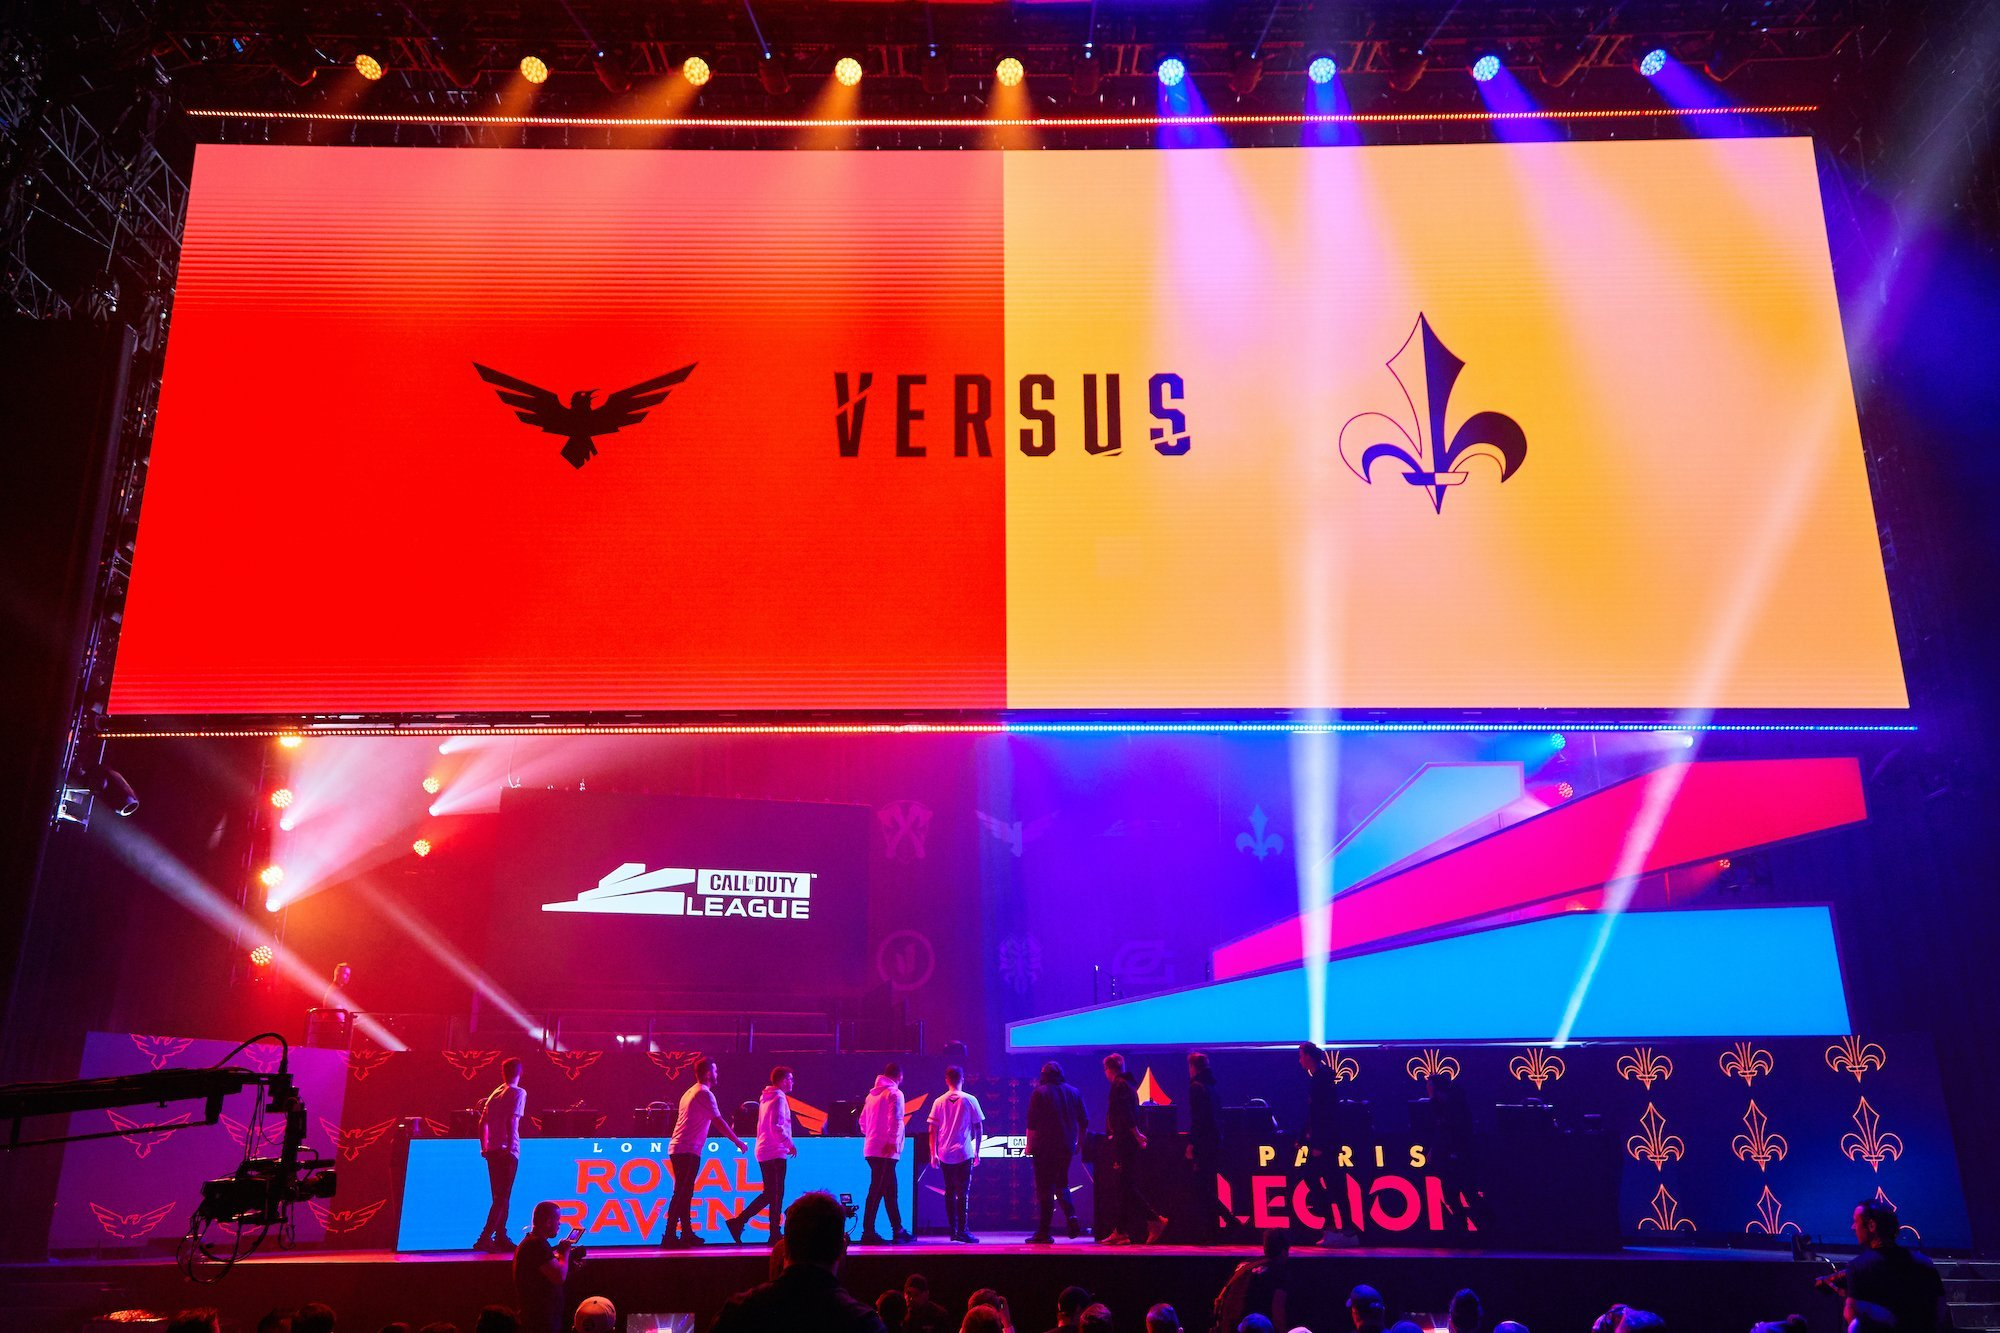 Call of Duty League Main Stage